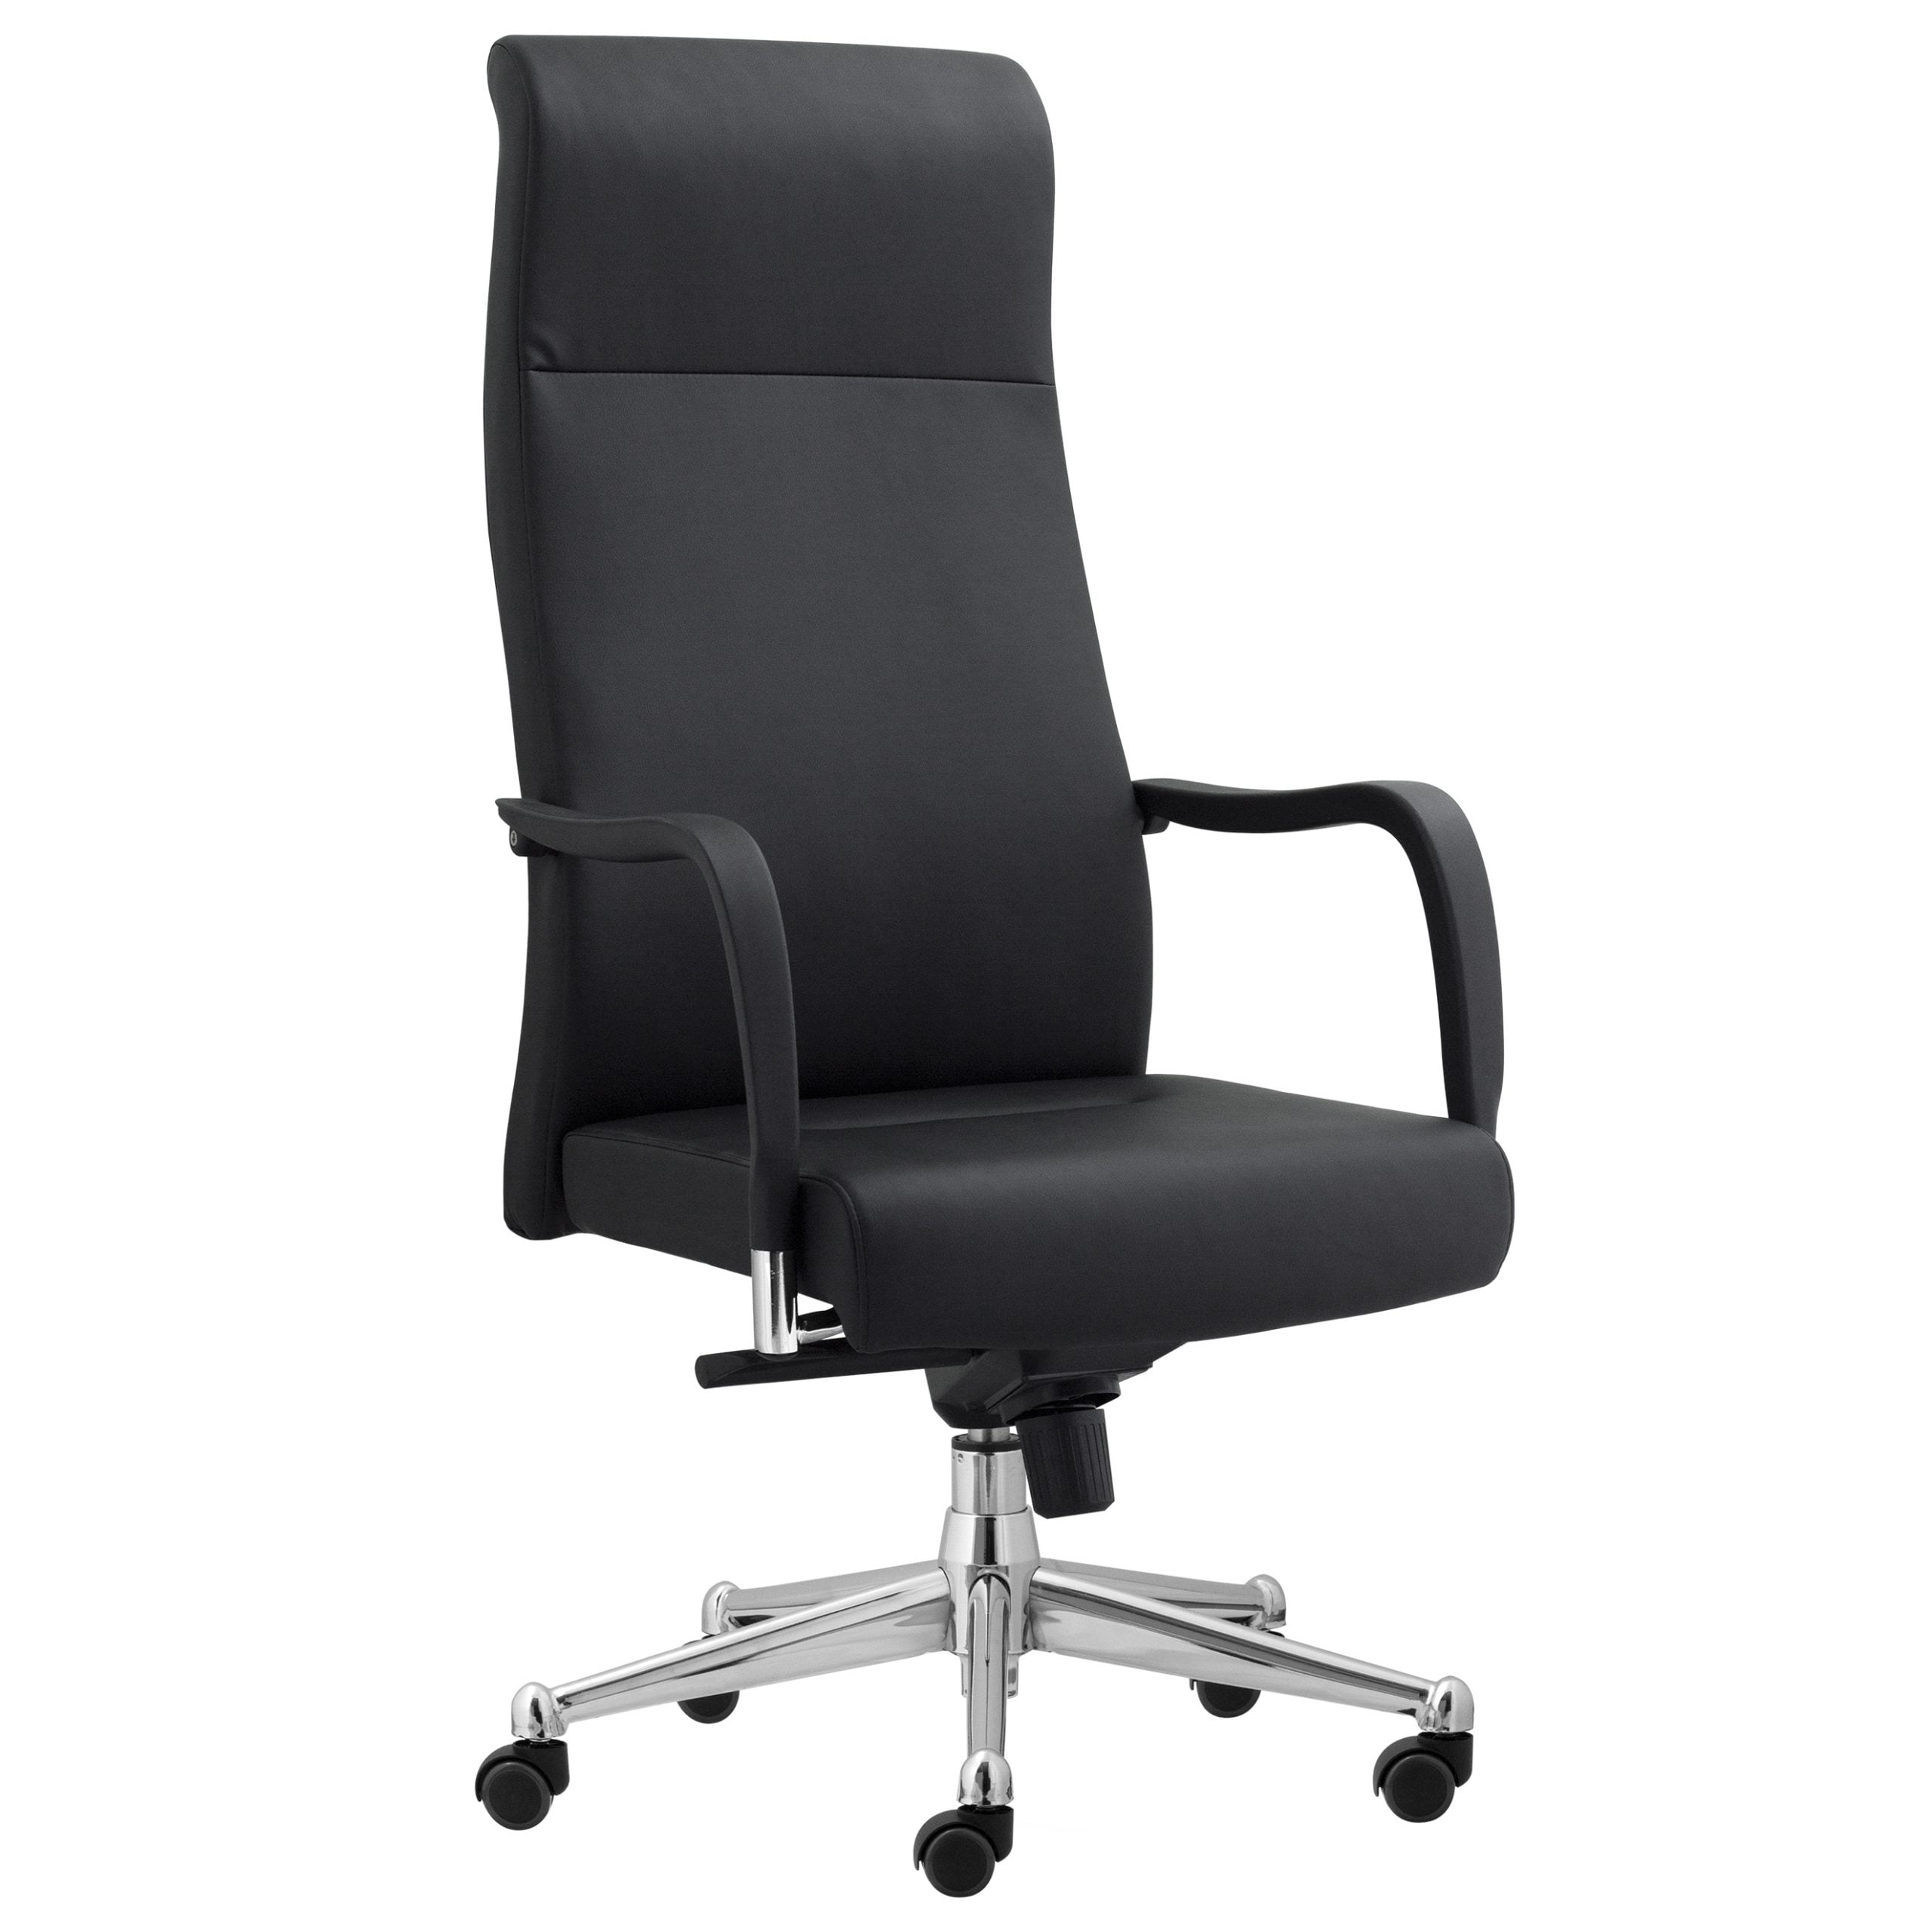 Helsinki High Back Task Chair - Black